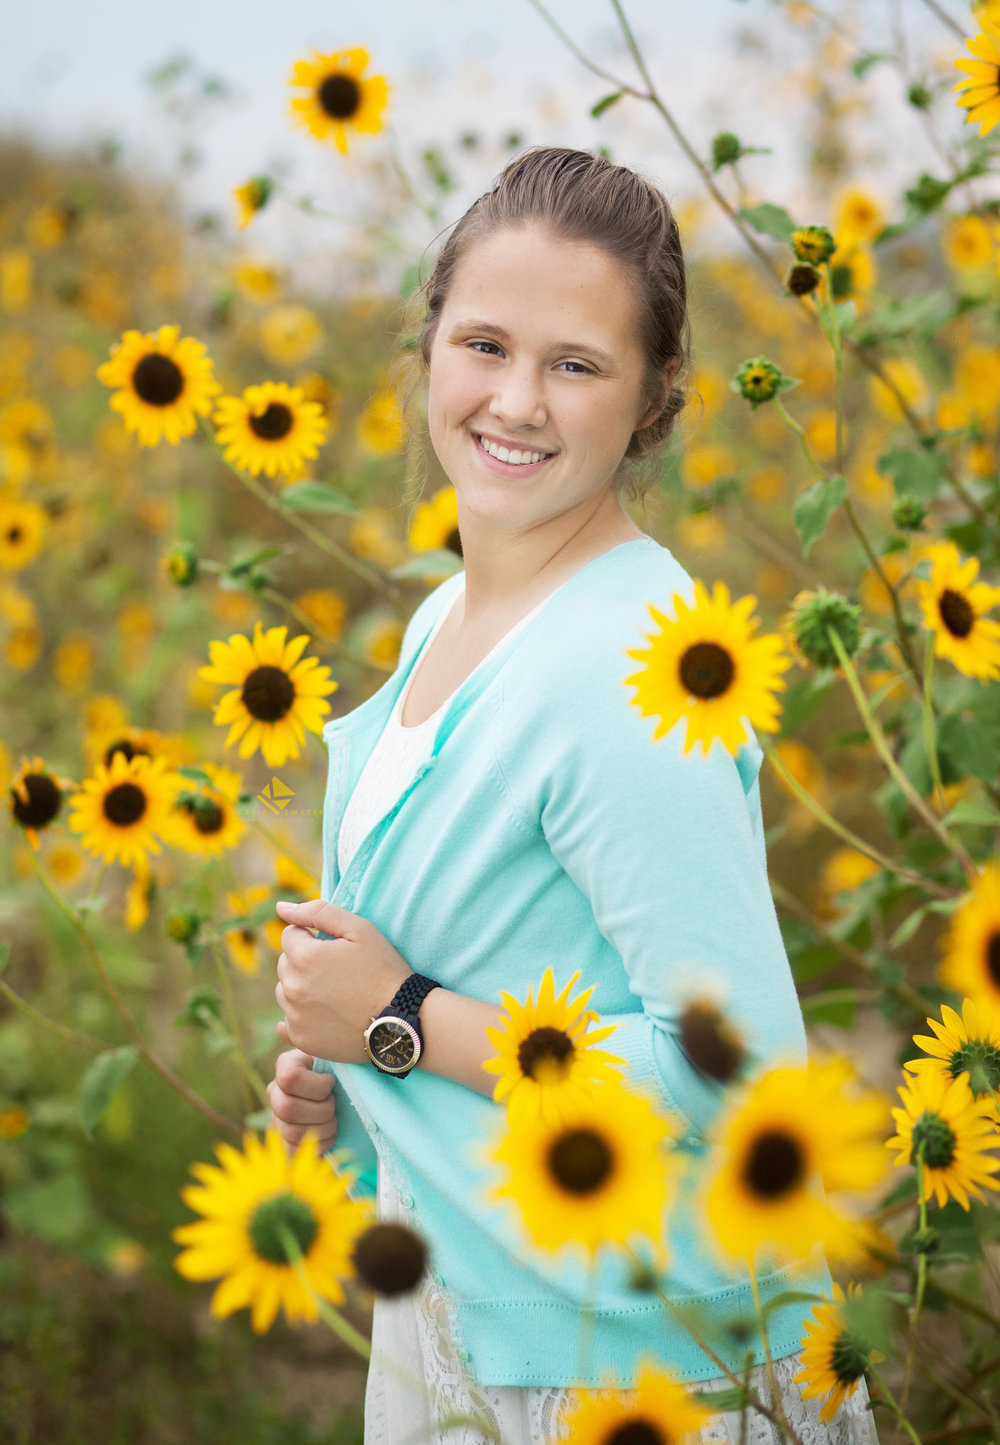 Sunflower Senior Images by Katie Swatek Photography | Natural Senior by Katie Swatek Photography